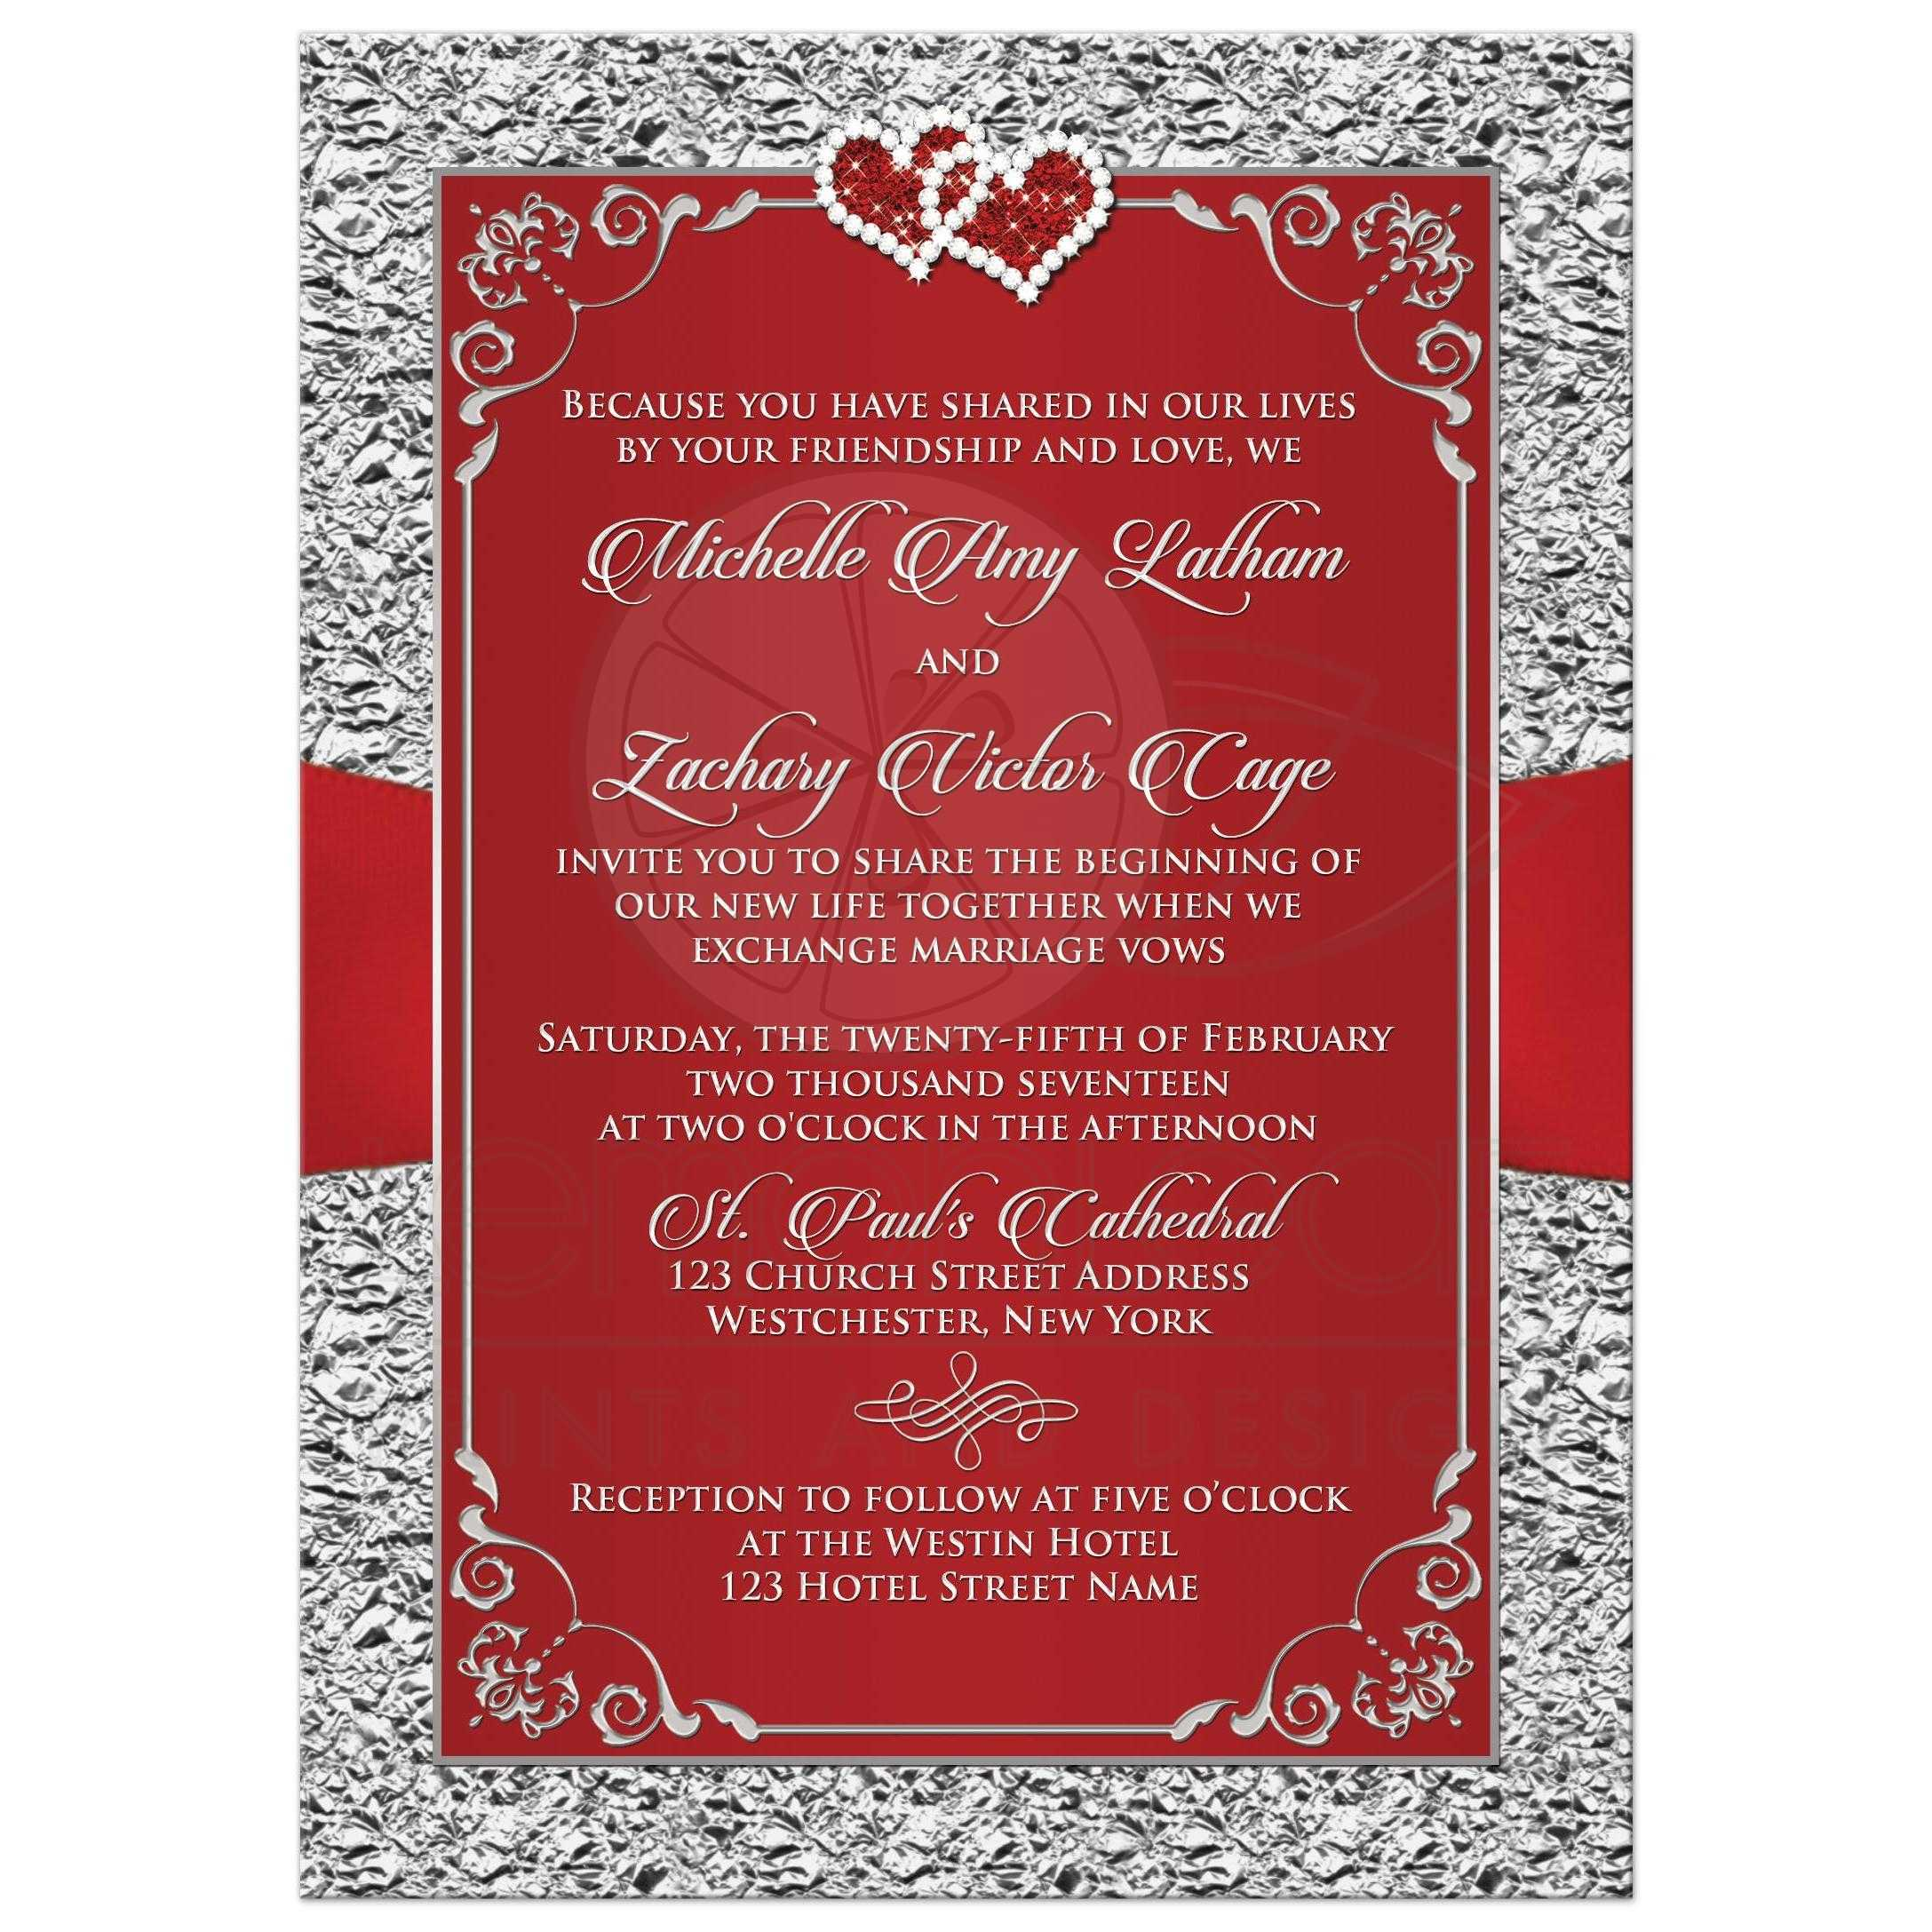 Wedding Invitation Black Red Silver Floral Joined Hearts FAUX